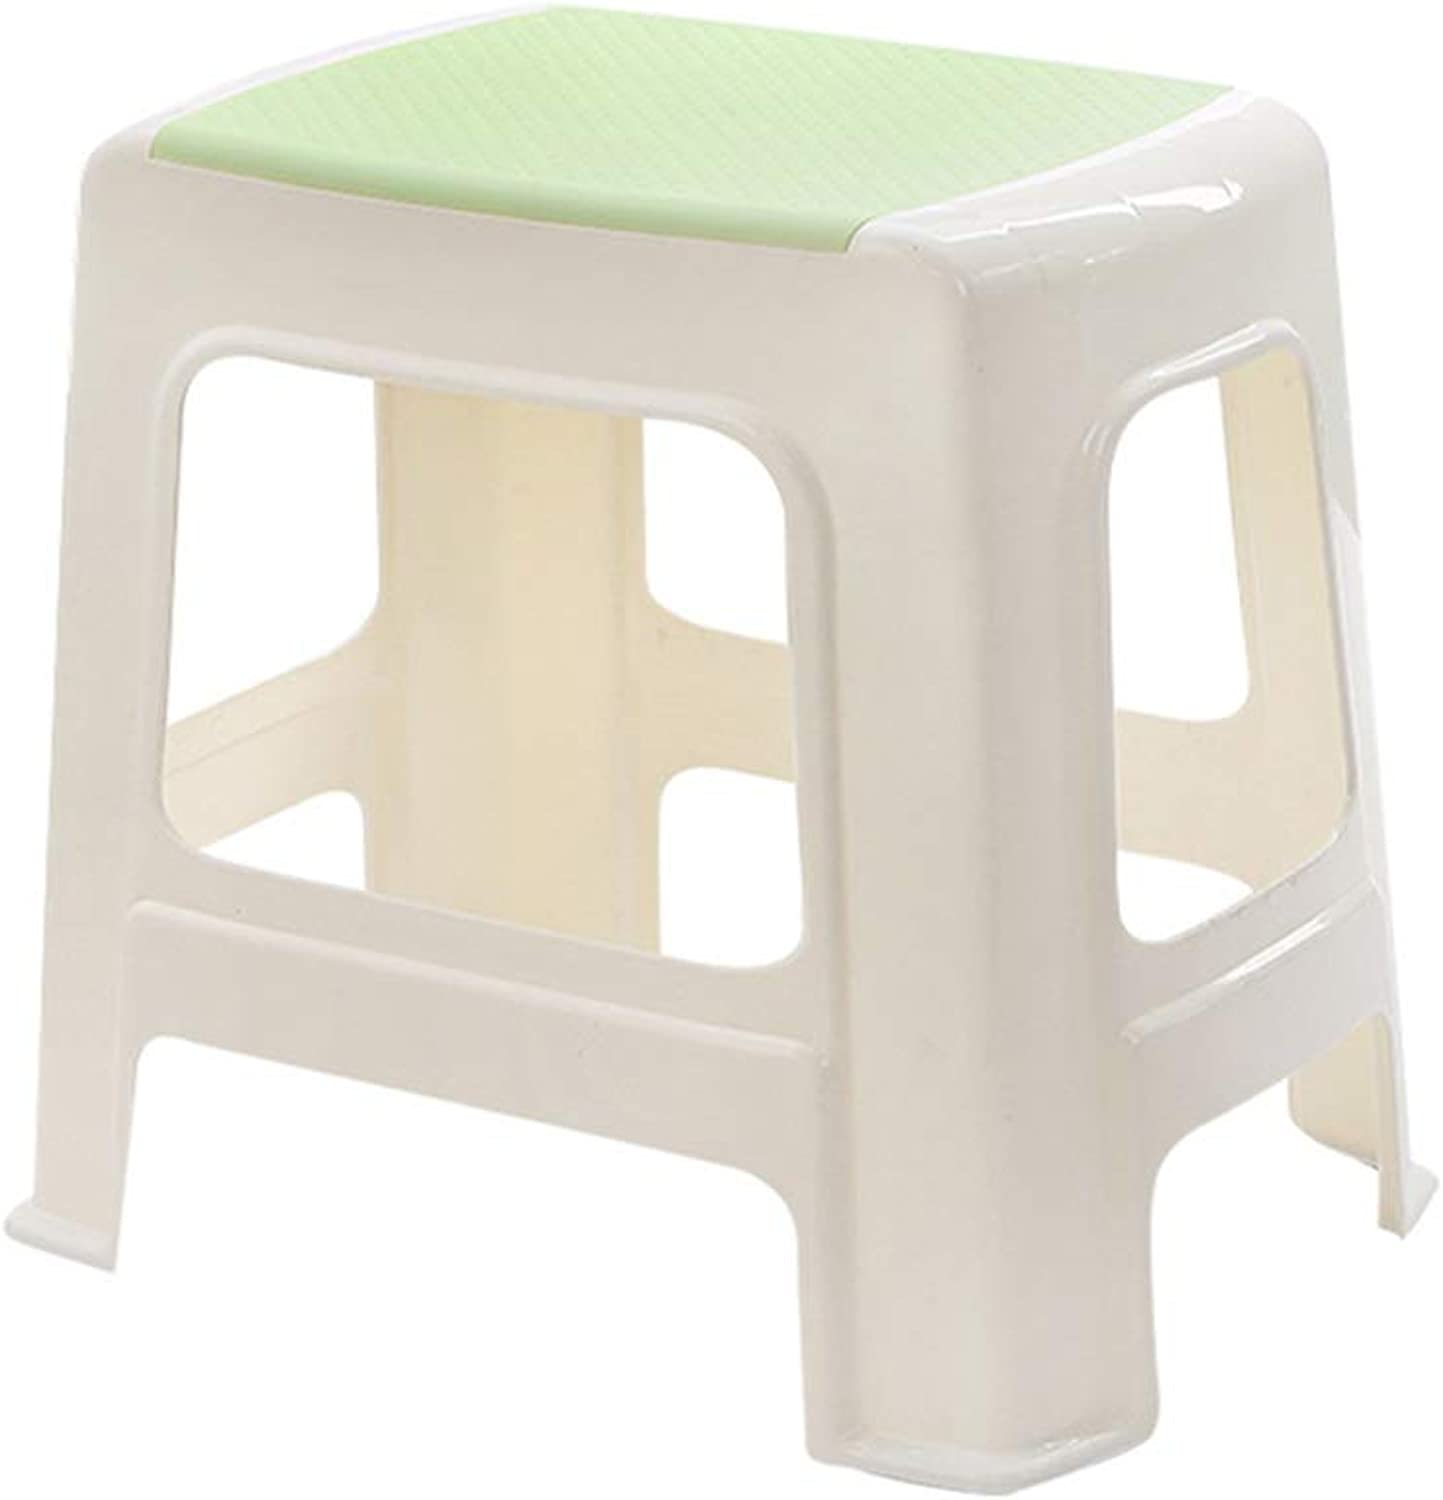 Ultralight Garden Stool, Portable Plastic Stack Stool Home Stool Meeting Stool Reception Stool Folding Chairs Toddler's Step Stool (color   C)